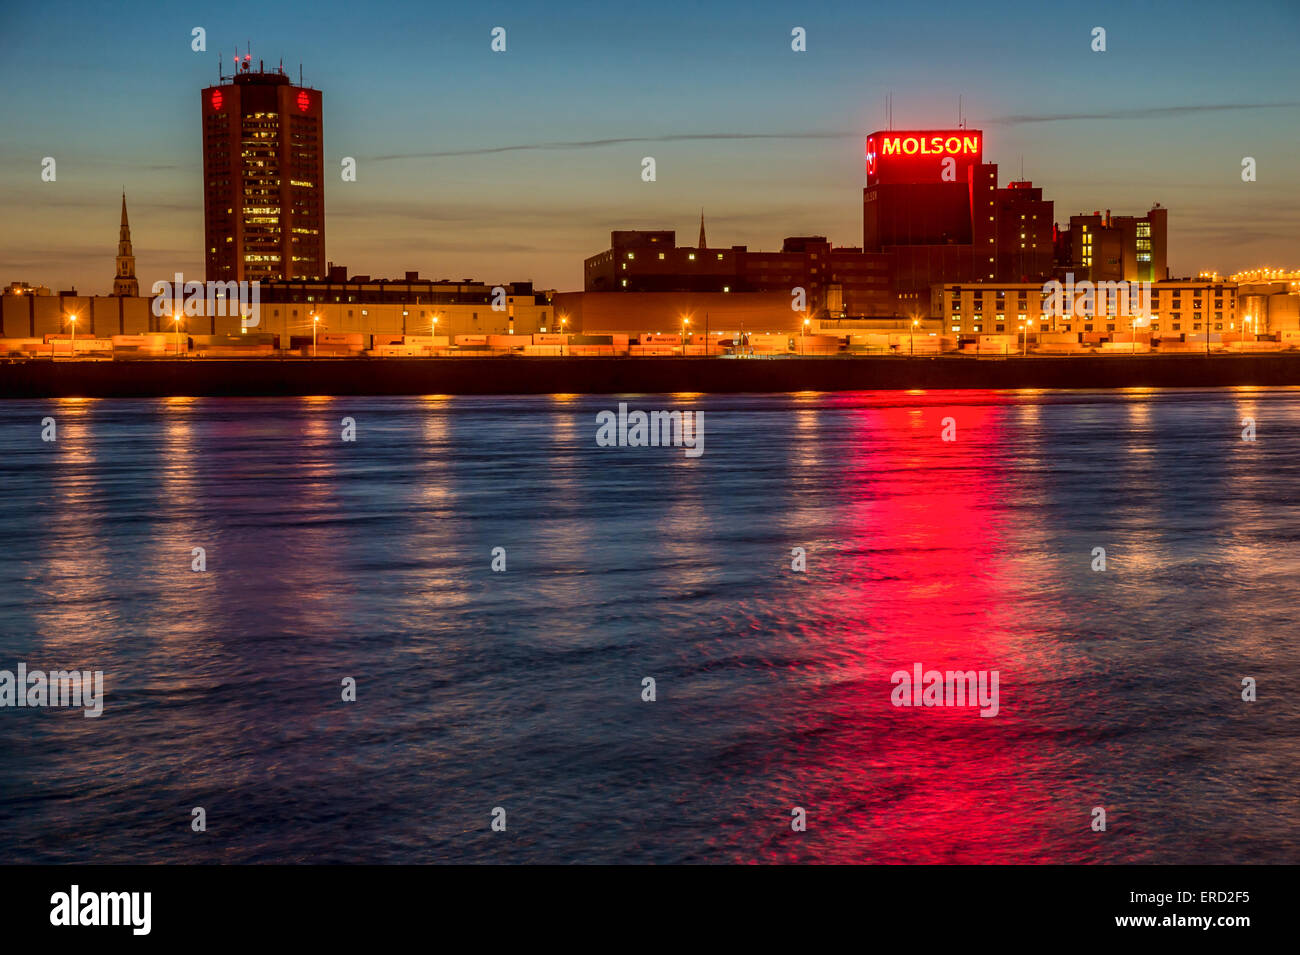 Radio-Canada building and Molson Brewery in Montreal, Canada, at sunset. - Stock Image